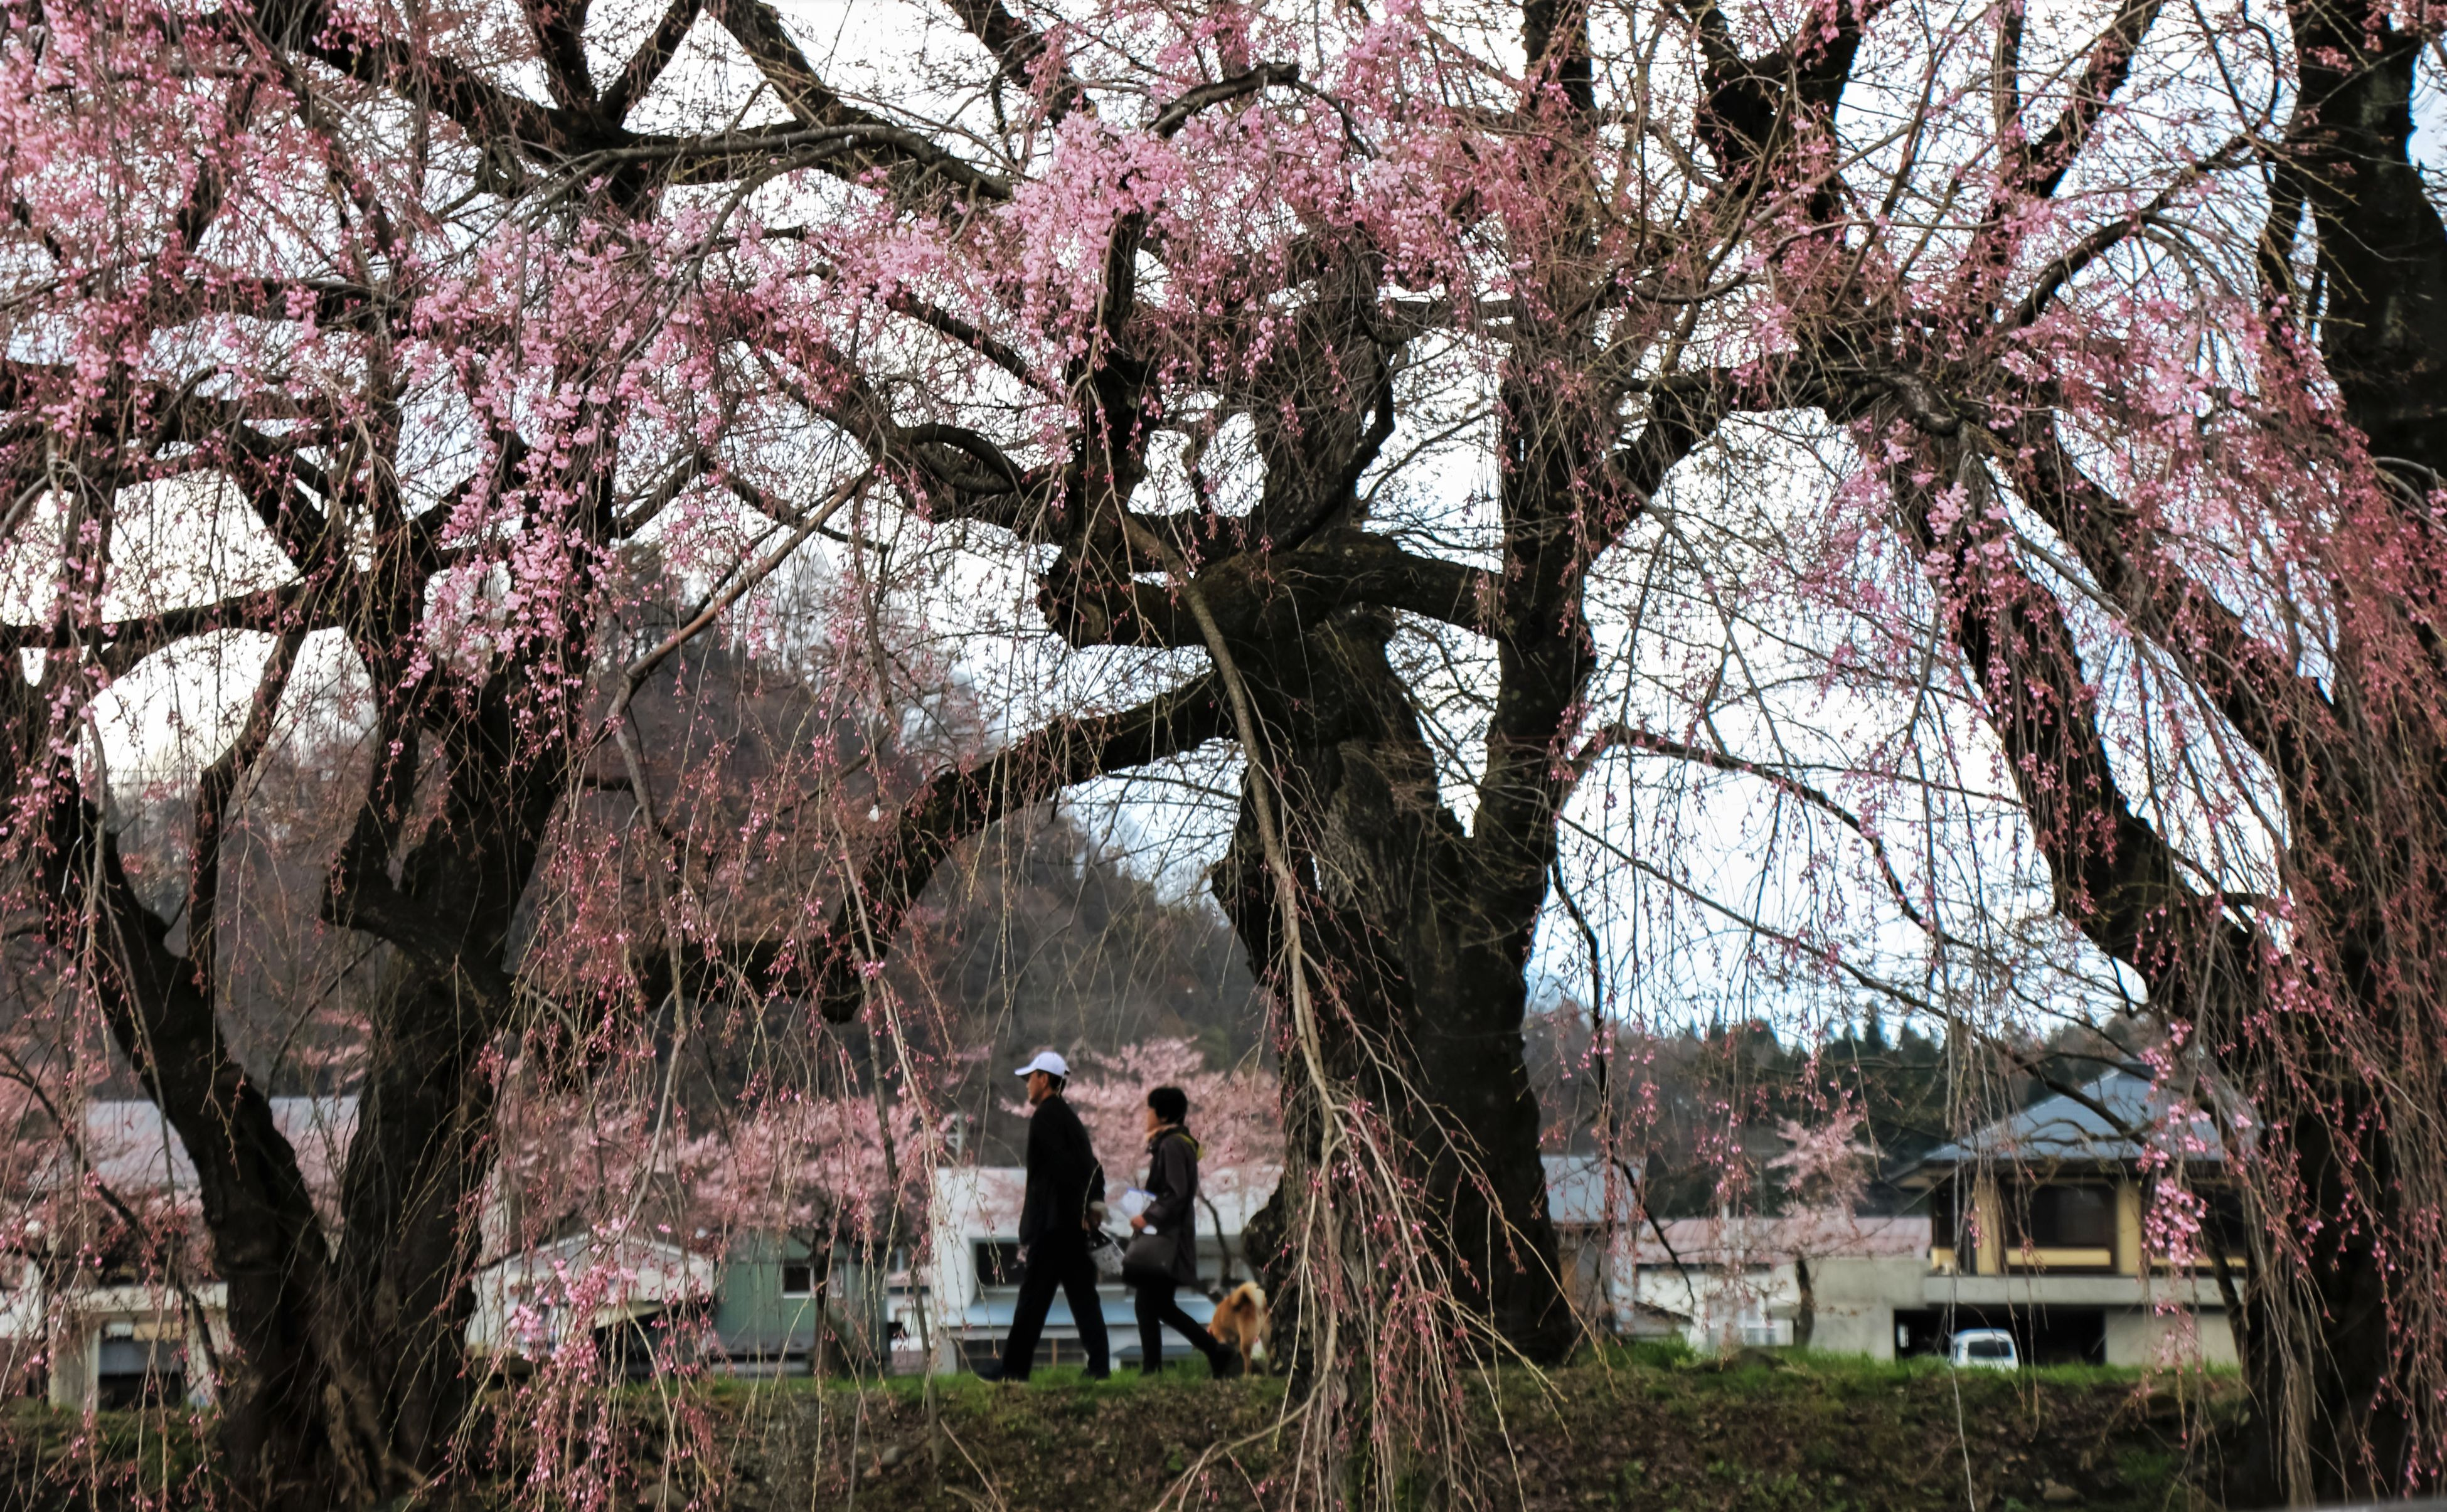 tree, branch, two people, growth, tree trunk, beauty in nature, flower, real people, nature, blossom, men, day, rear view, full length, outdoors, springtime, togetherness, standing, couple - relationship, built structure, scenics, sky, architecture, grass, freshness, people